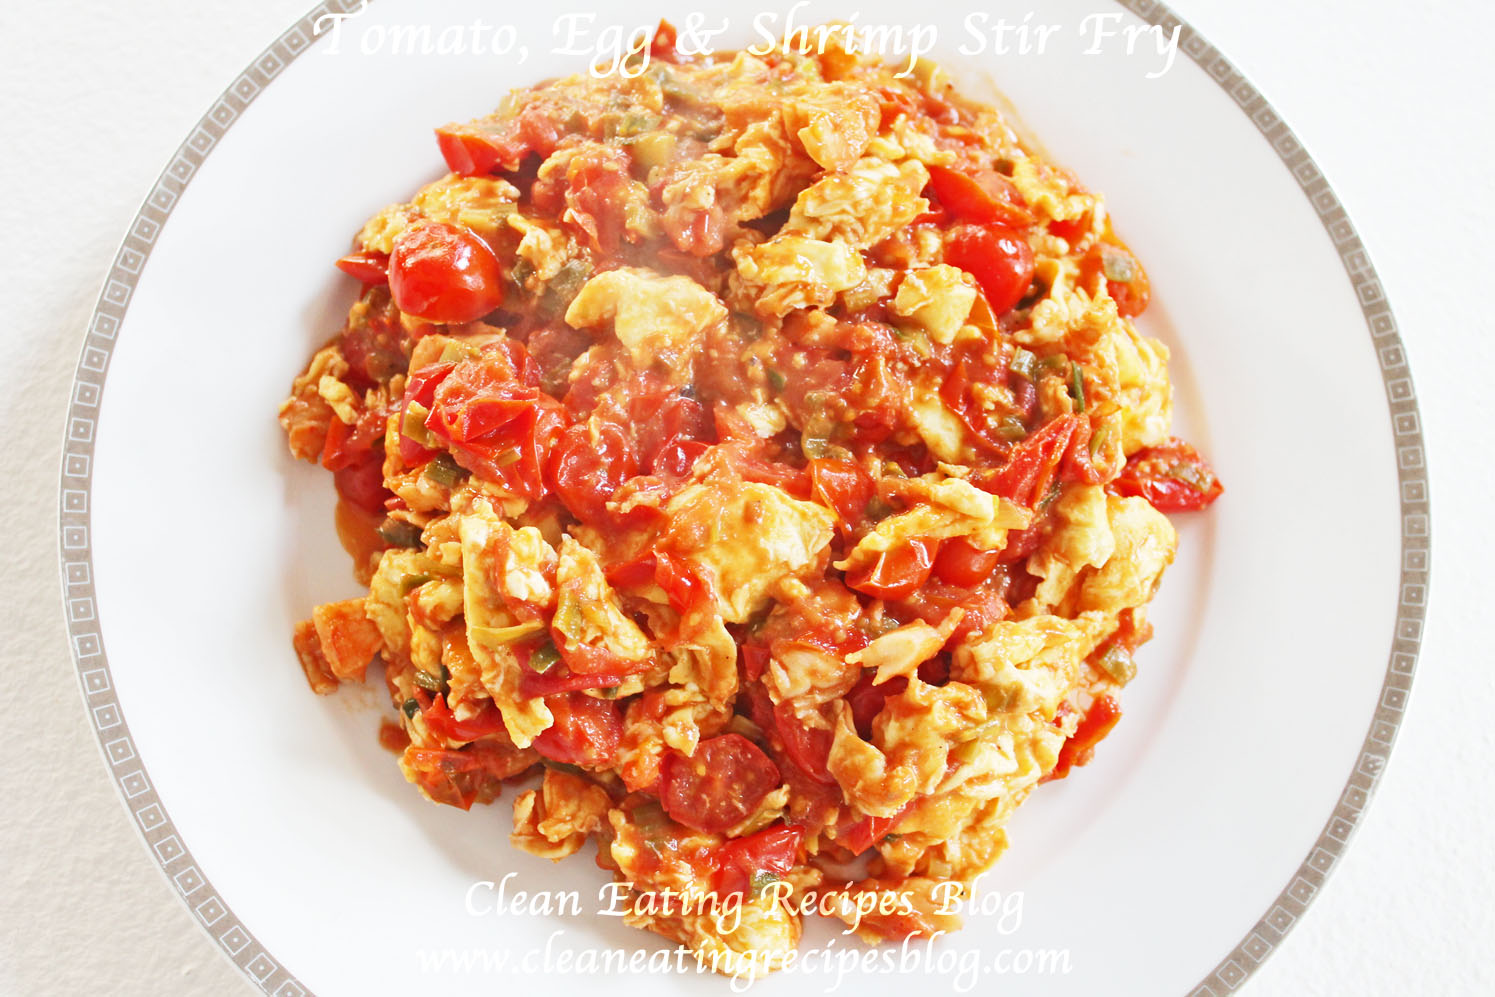 Clean Eating Dinner Idea – Tomato, Egg and Shrimp Stir Fry